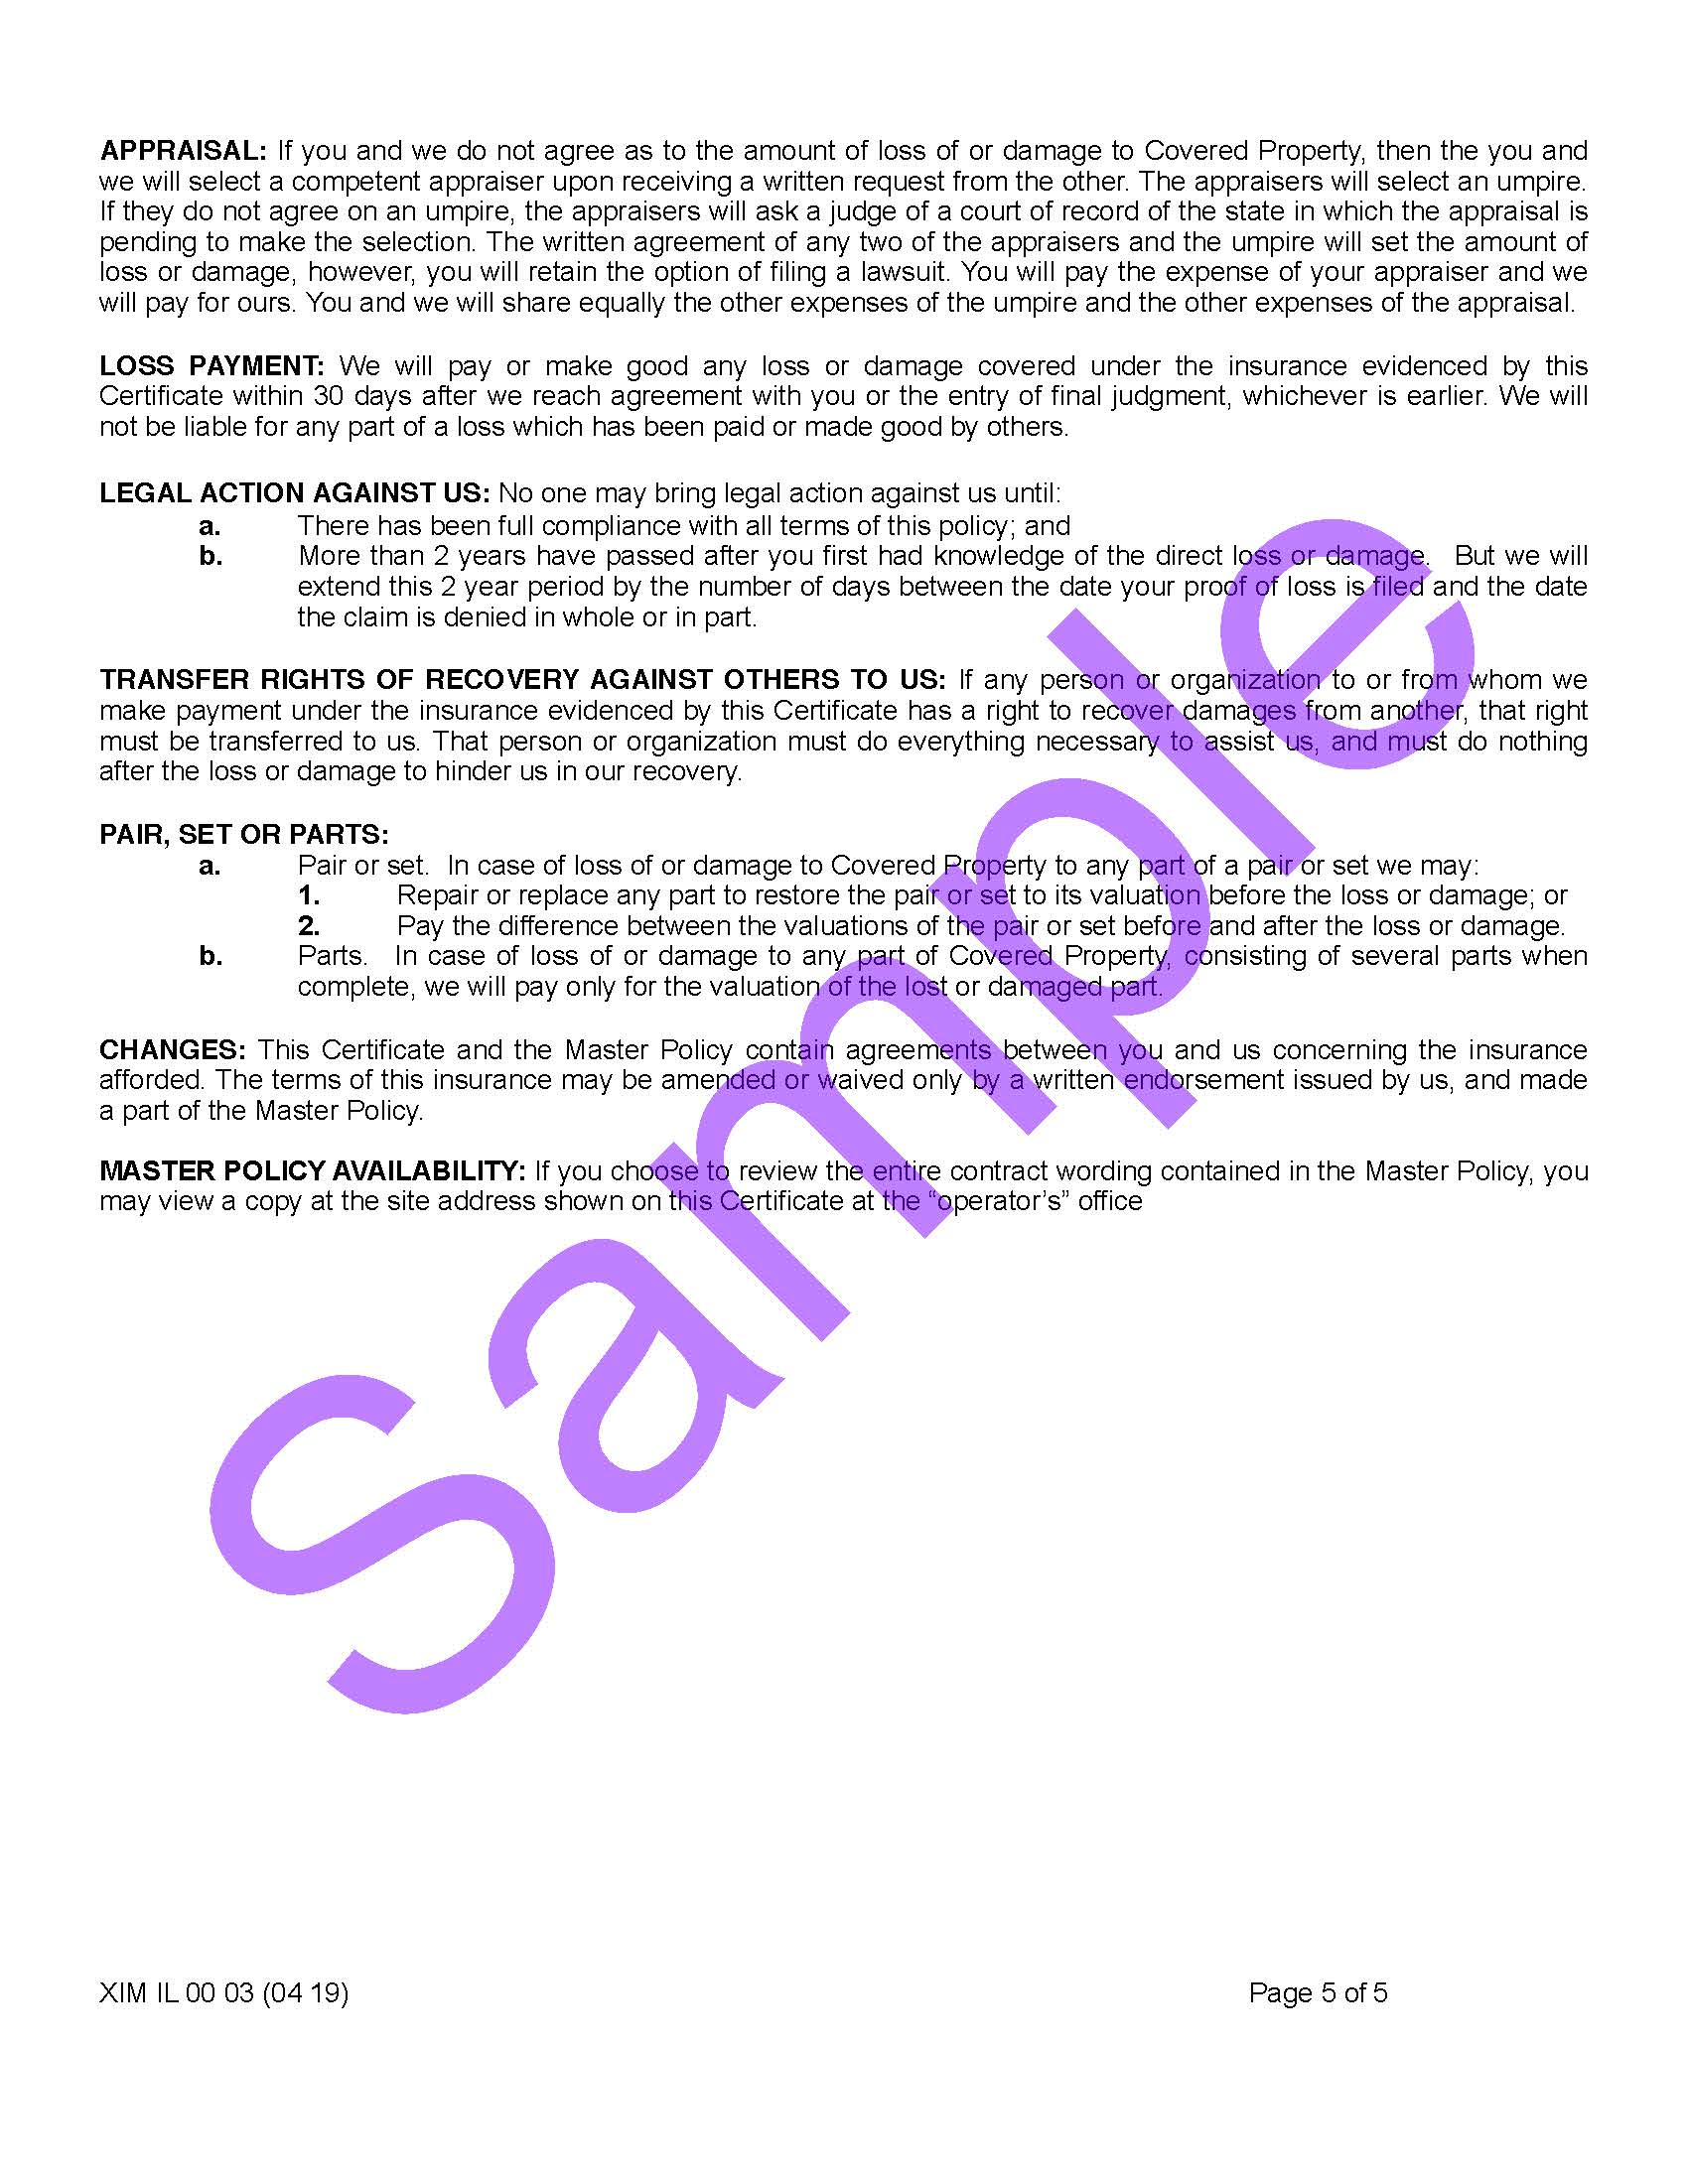 XIM IL 00 03 04 19 Illinois Certificate of InsuranceSample_Page_5.jpg